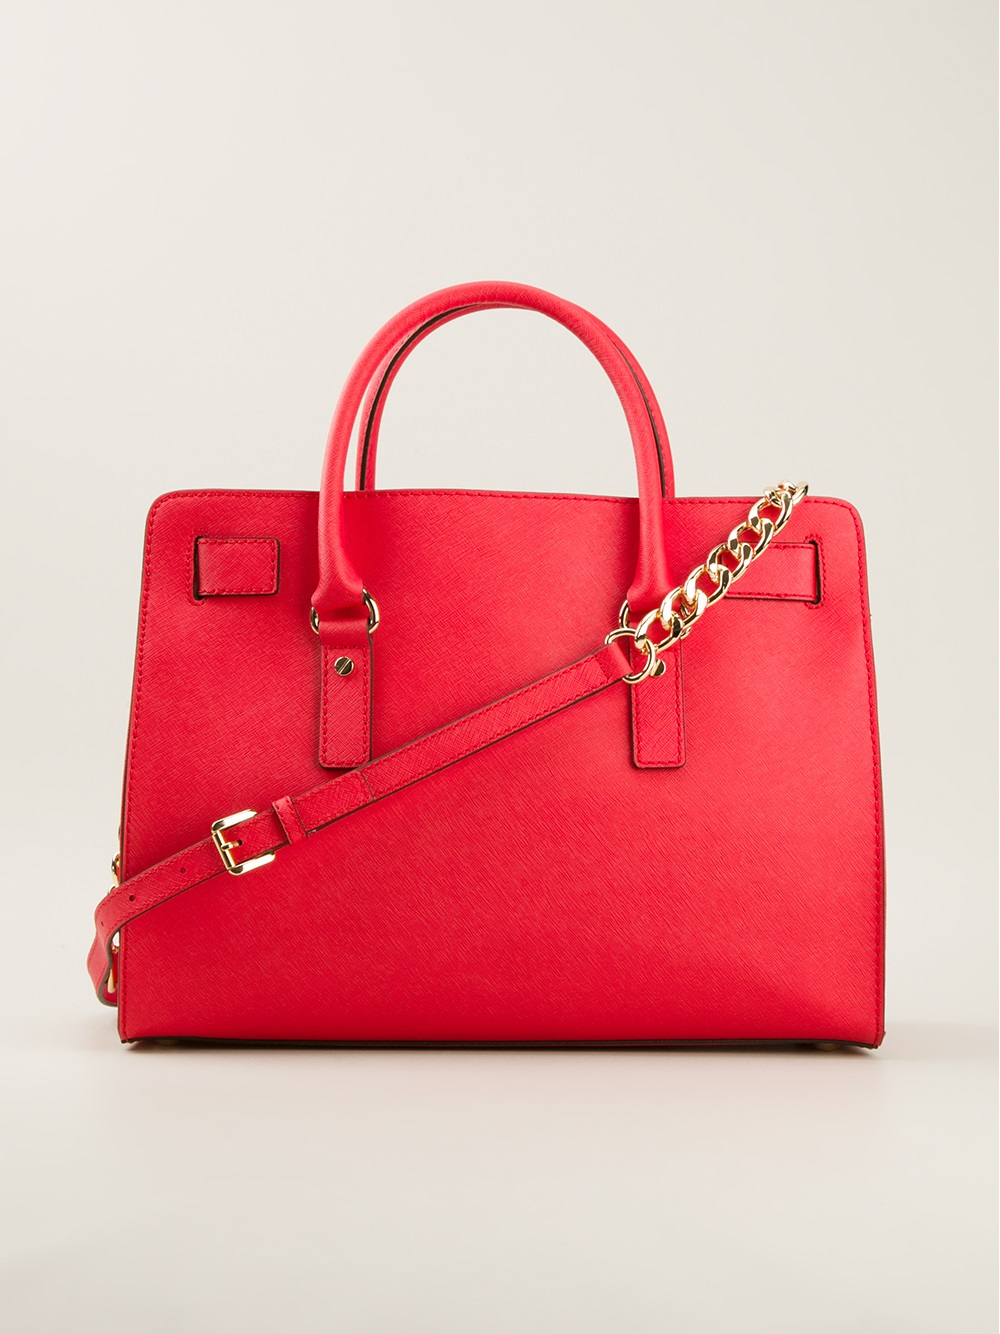 Michael Kors Hamilton Tote in Red